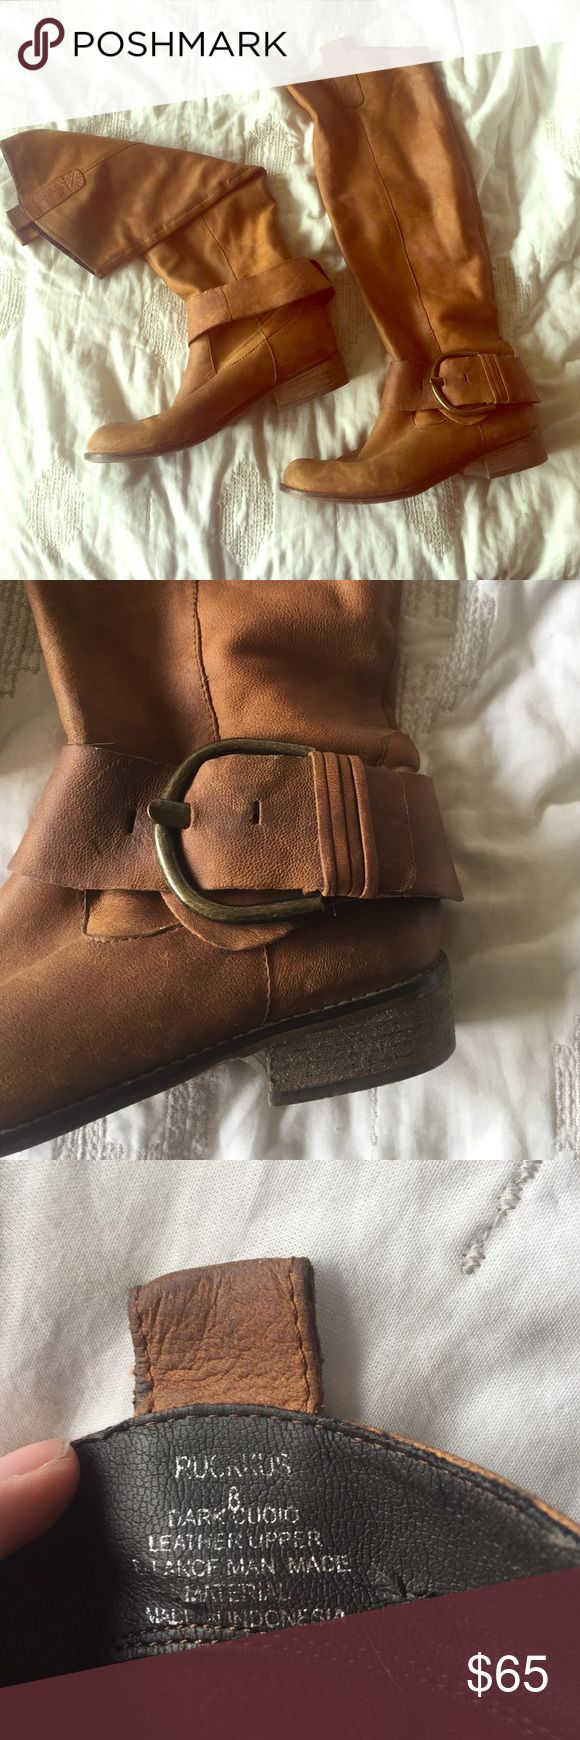 Steve Madden Leather Tall Boots Steve Madden Leather Brown Boots, have been worn quite a bit but still look wonderfully aged! Very soft Leather! Steve Madden Shoes Heeled Boots